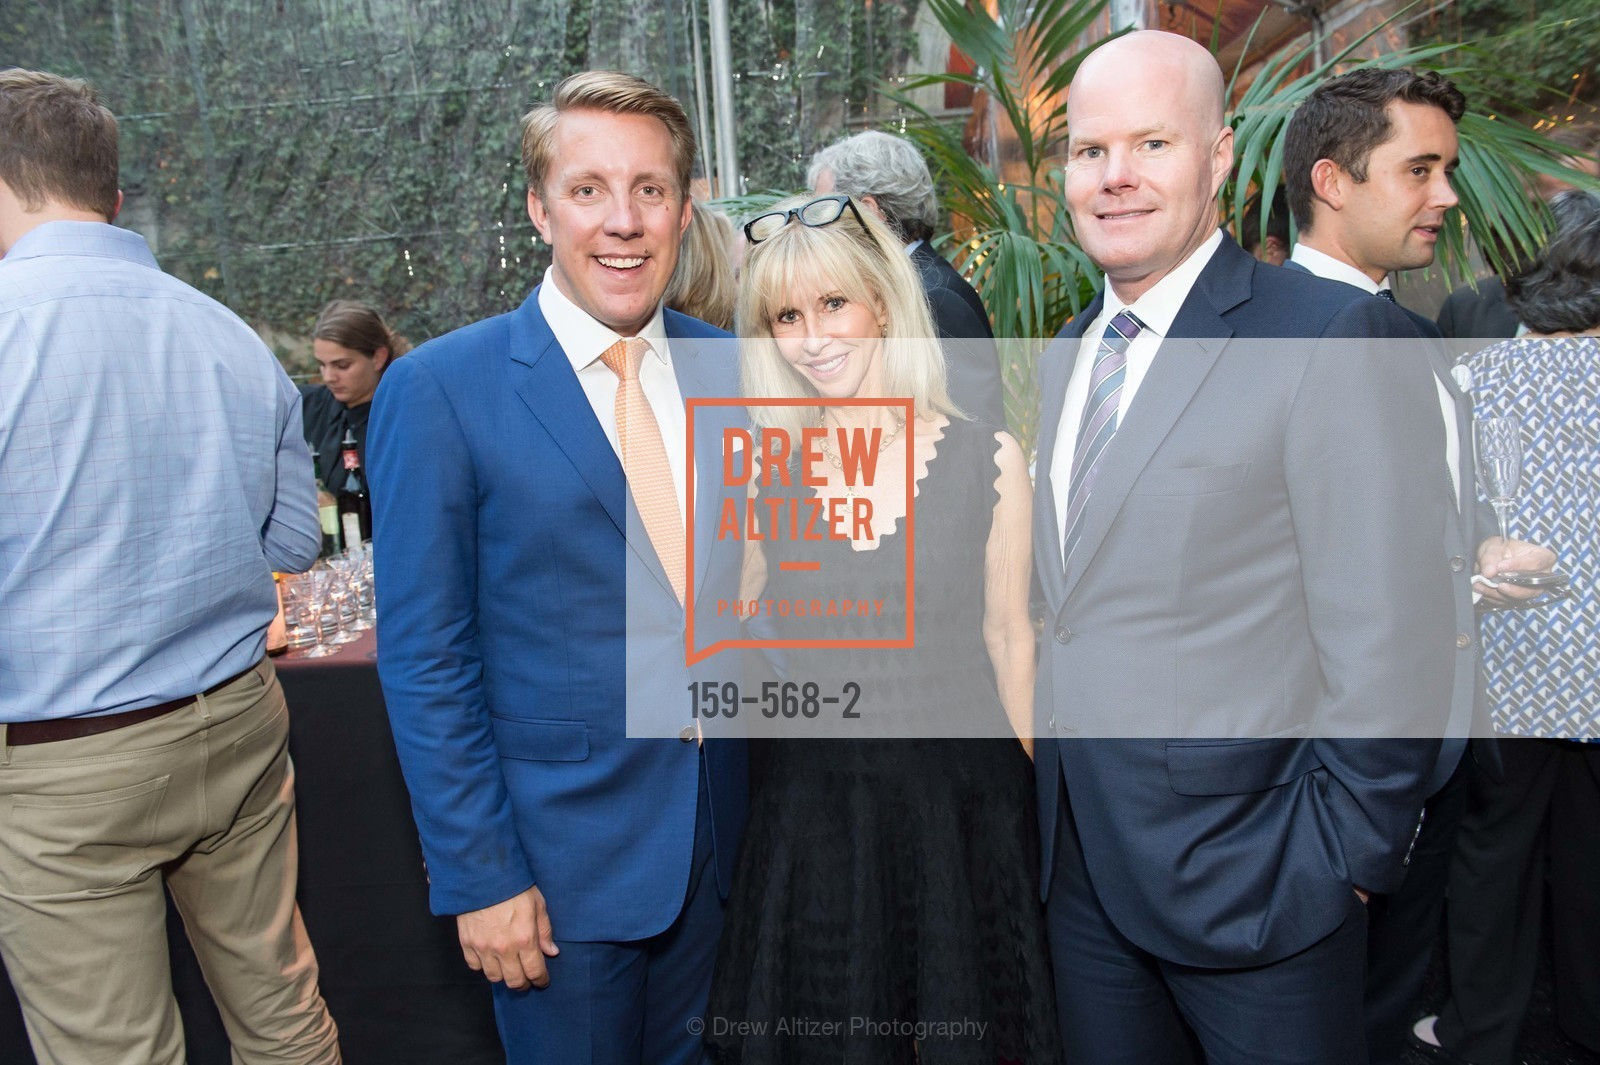 Red Nelson, Ginger Martin, SOTHEBY'S  Hosts a Private Viewing of Highlights from the Collection of MRS. PAUL MELLON, US, September 17th, 2014,Drew Altizer, Drew Altizer Photography, full-service agency, private events, San Francisco photographer, photographer california